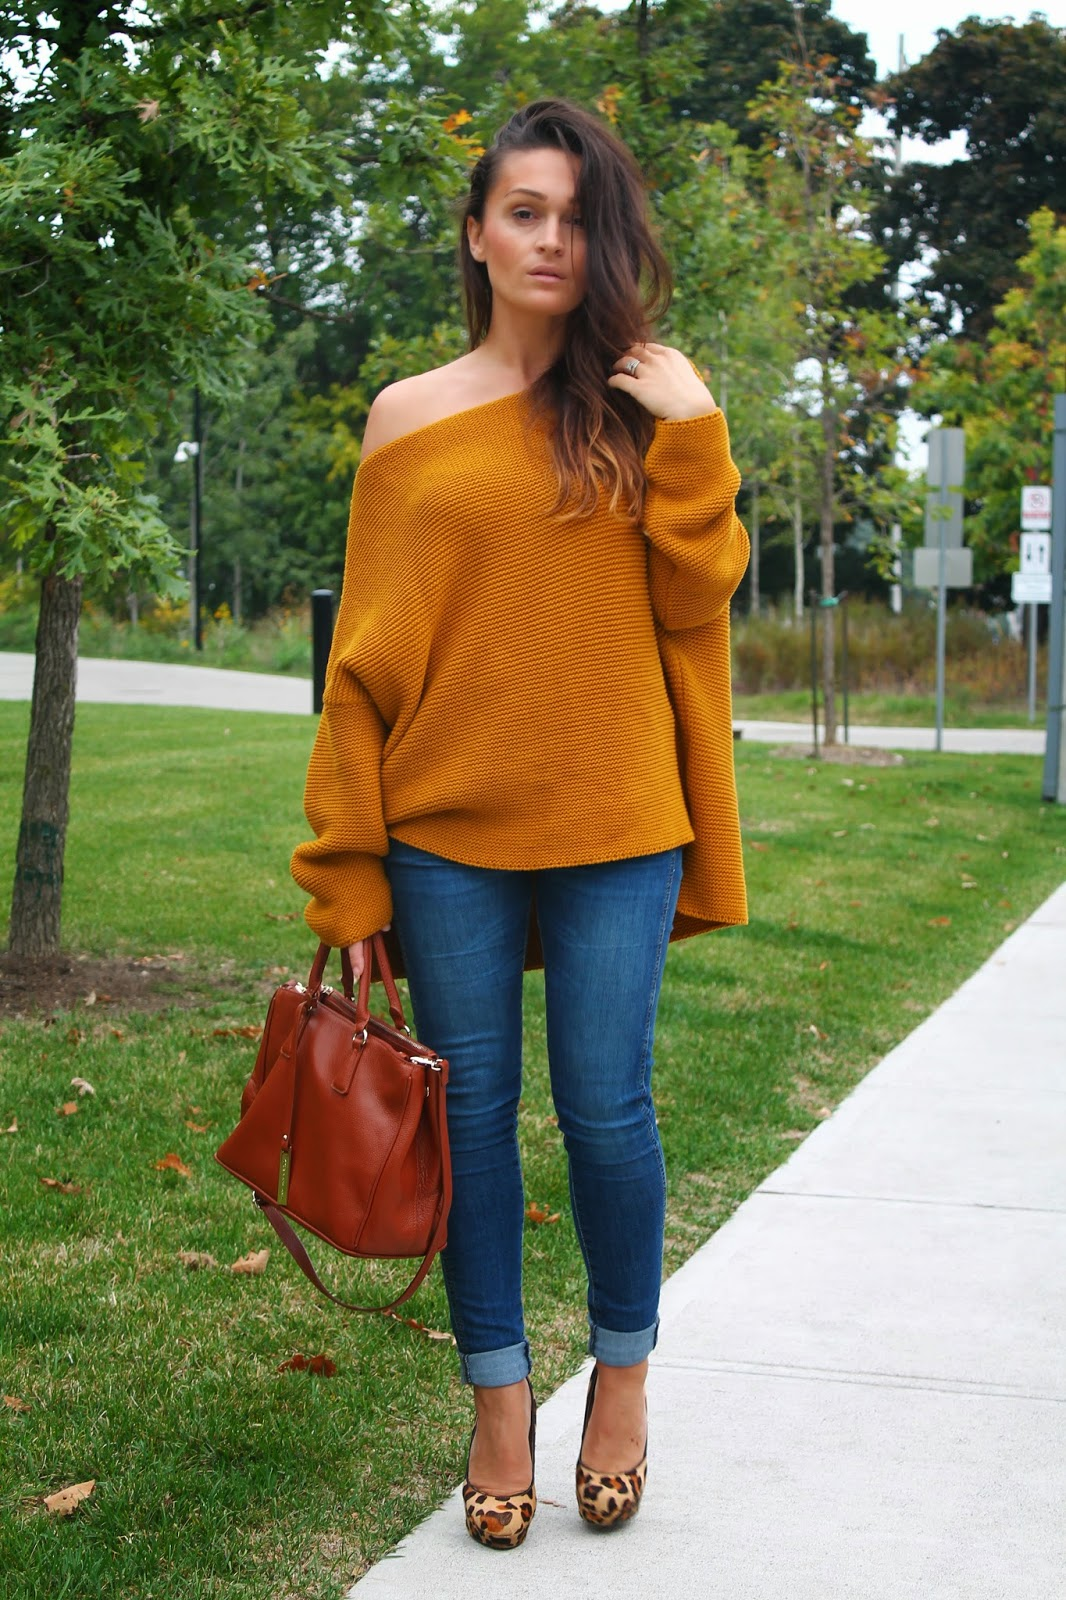 uk blogger, Oversized sweater, zara sweater, fall trend, fall sweater, blogerke, dzemper, toronto fashion blogger, toronto street style